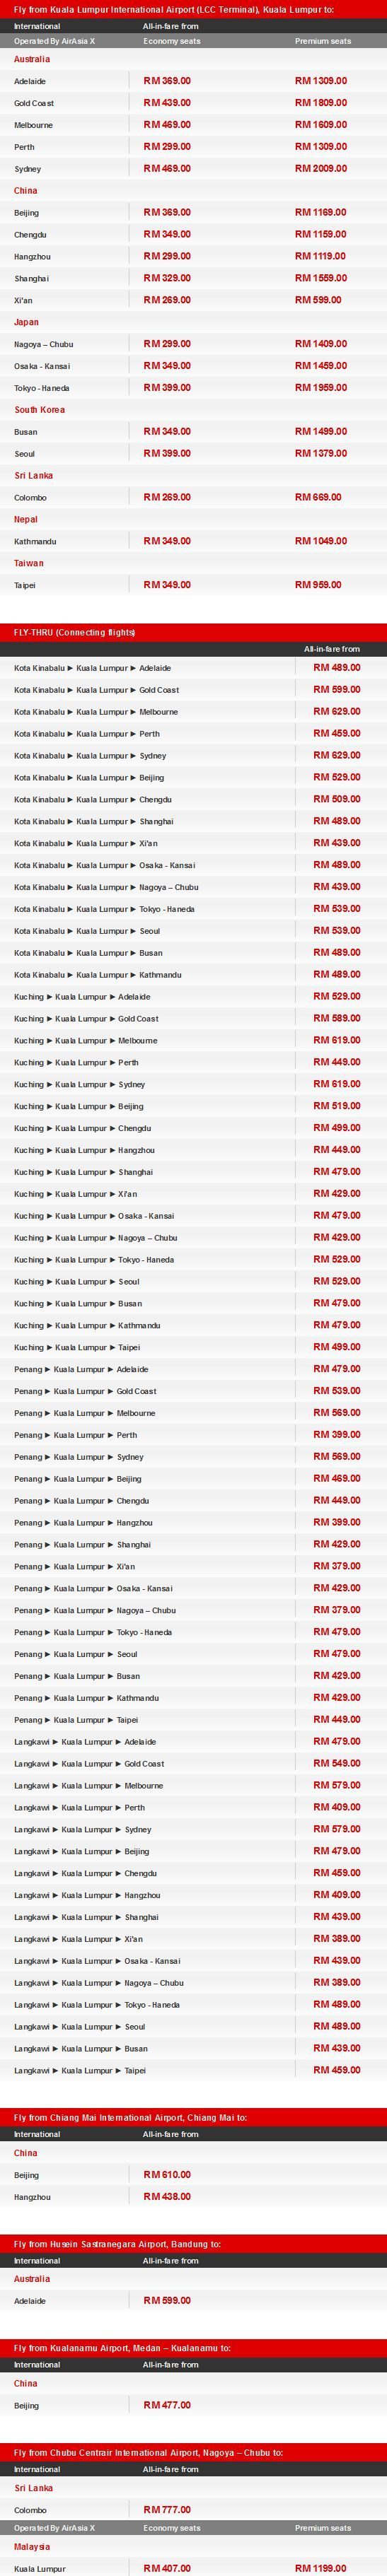 how to cancel airasia ticket online